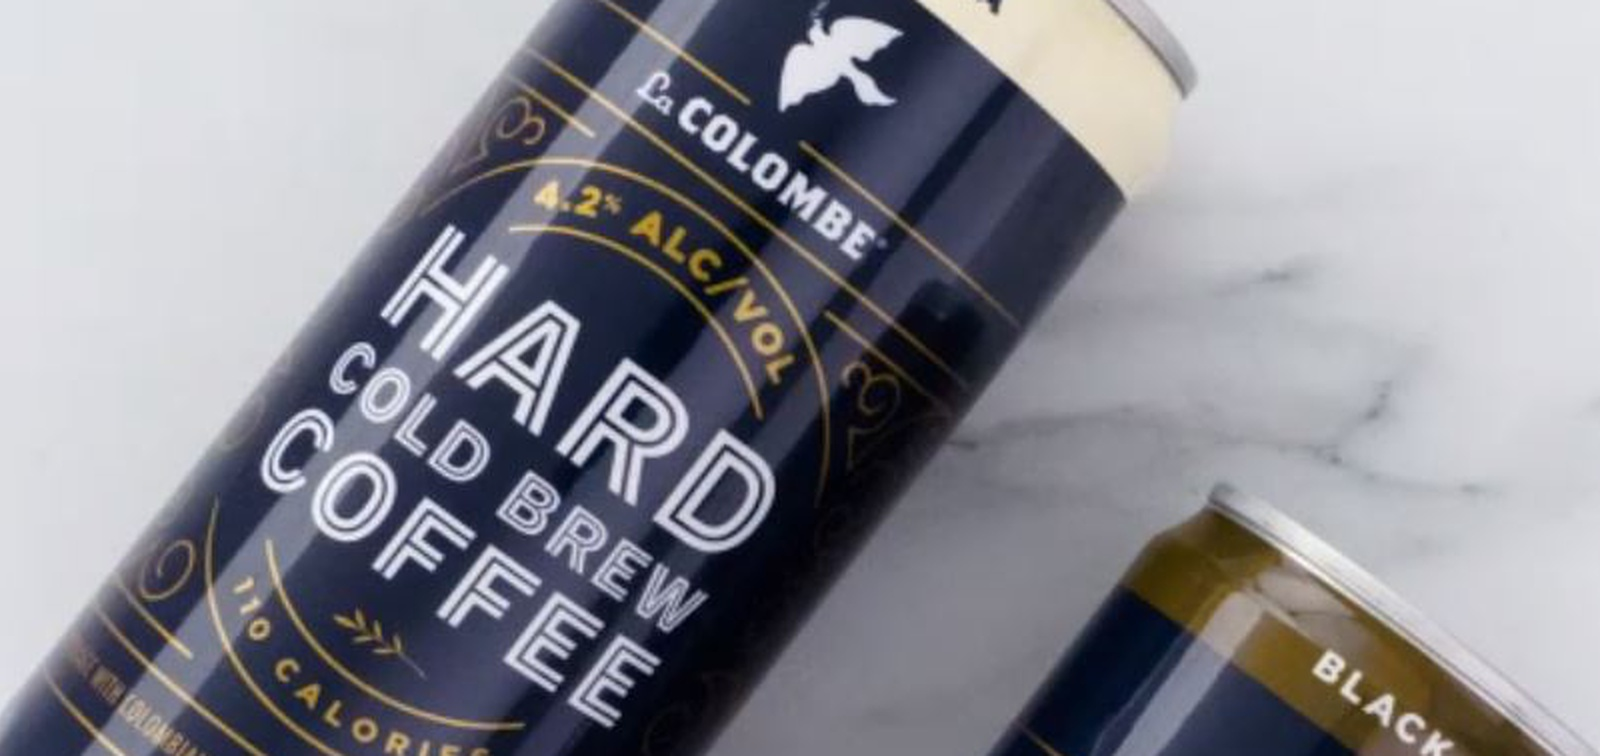 Molson Coors moves beyond beer with hard coffee launch